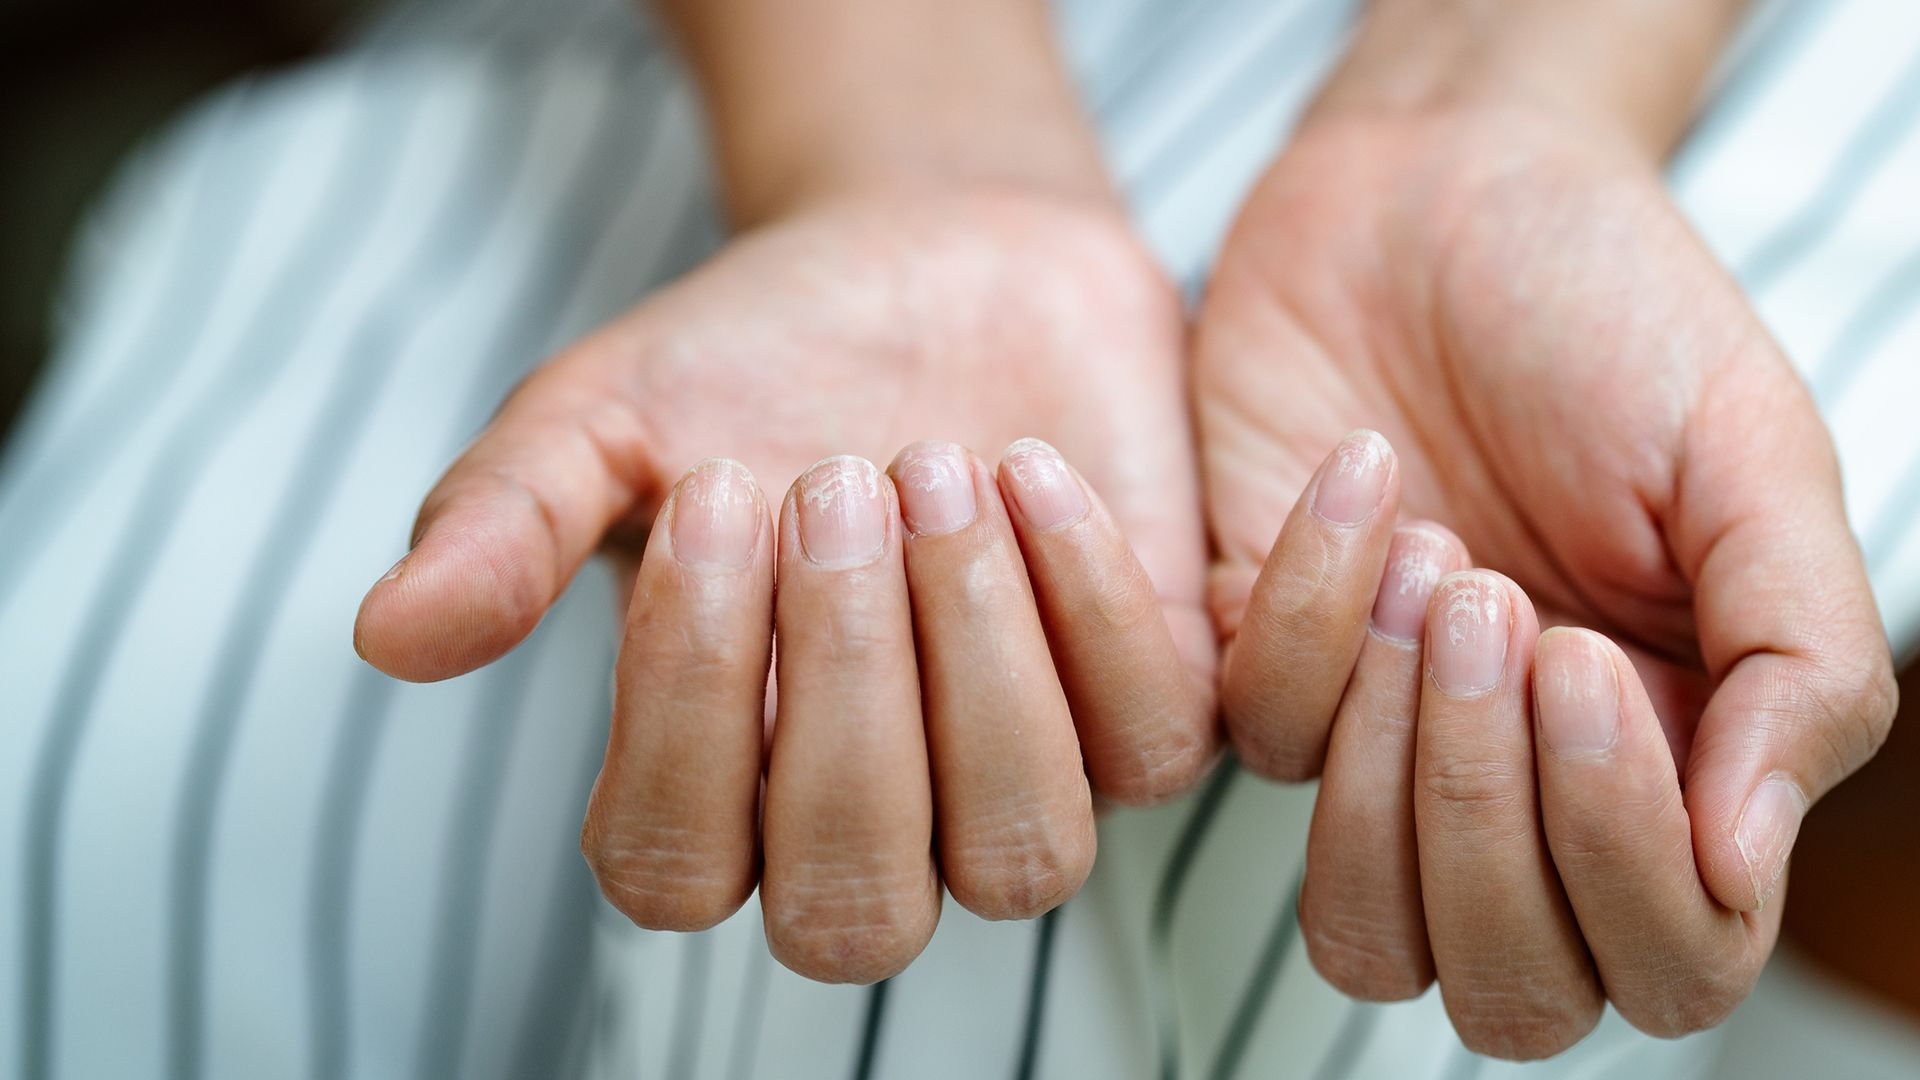 Psoriatic Arthritis: A Guide to Better Hand and Foot Care